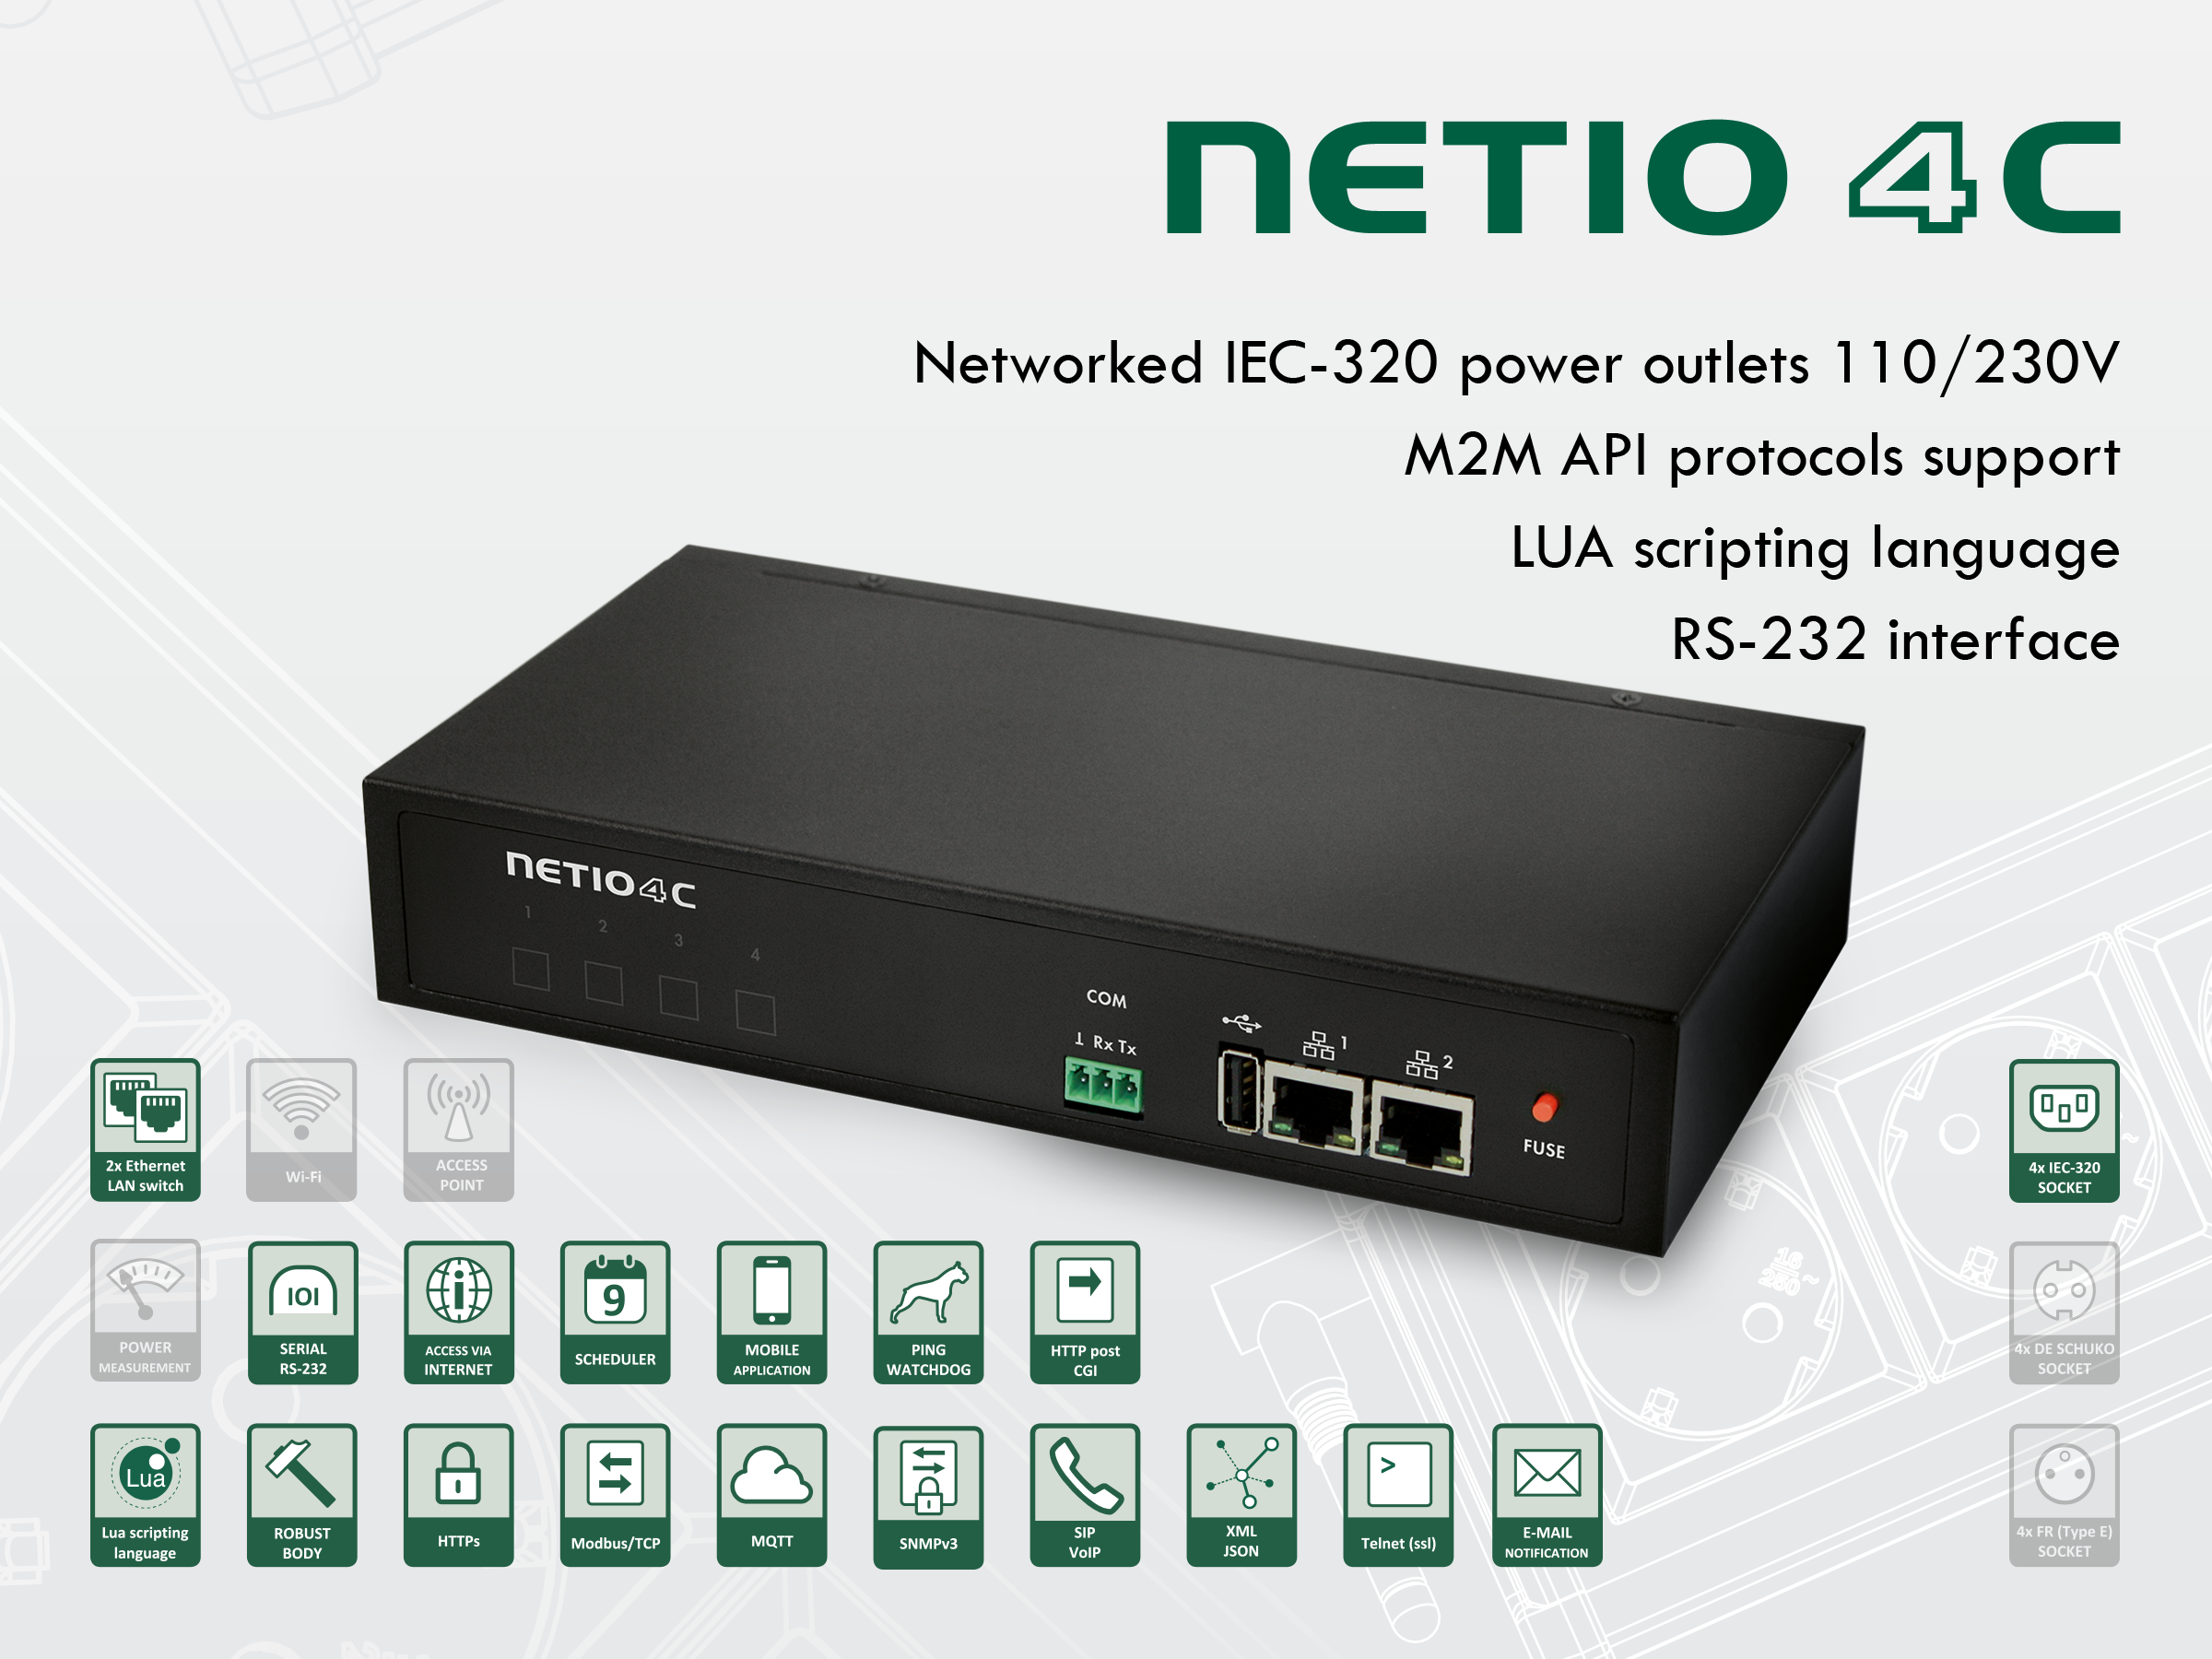 NETIO 4C:  networked IEC-320 power outlets 110/230V